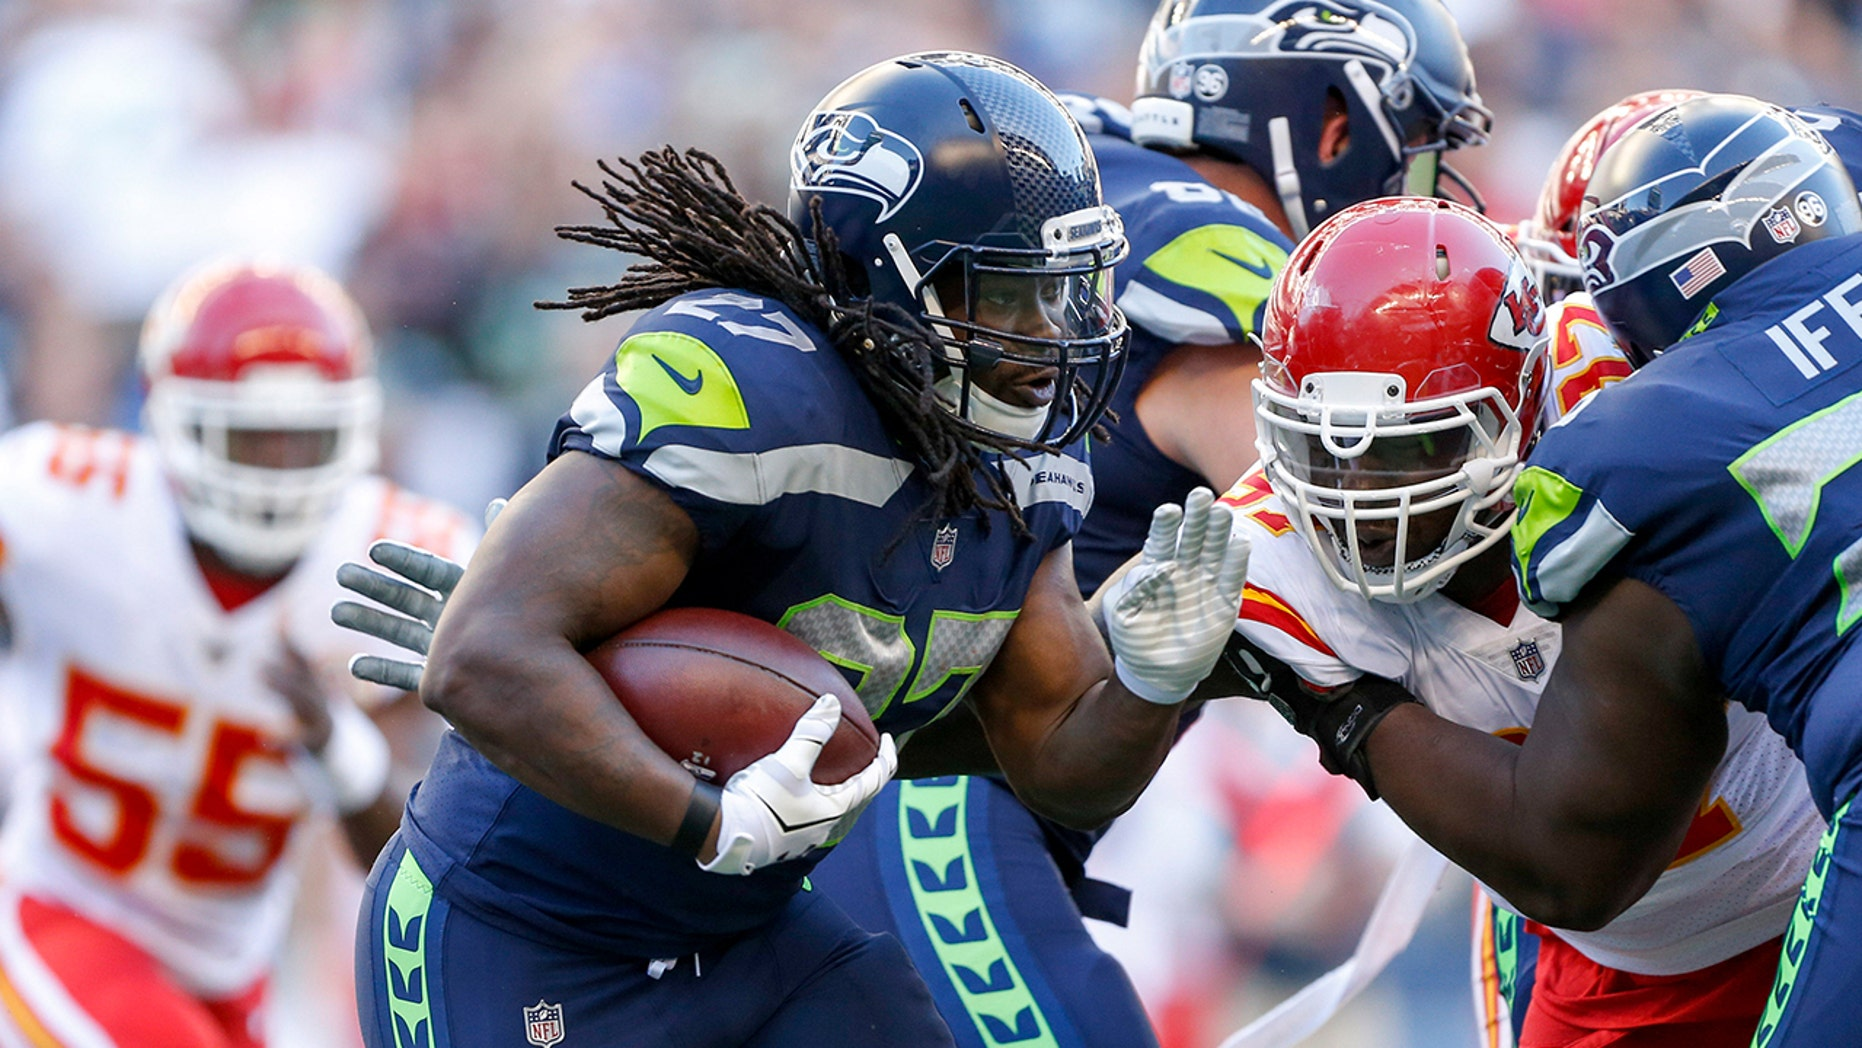 Seattle Seahawks running back Eddie Lacy (27) rushes against the Kansas City Chiefs the first quarter at CenturyLink Field on August 25, 2017.